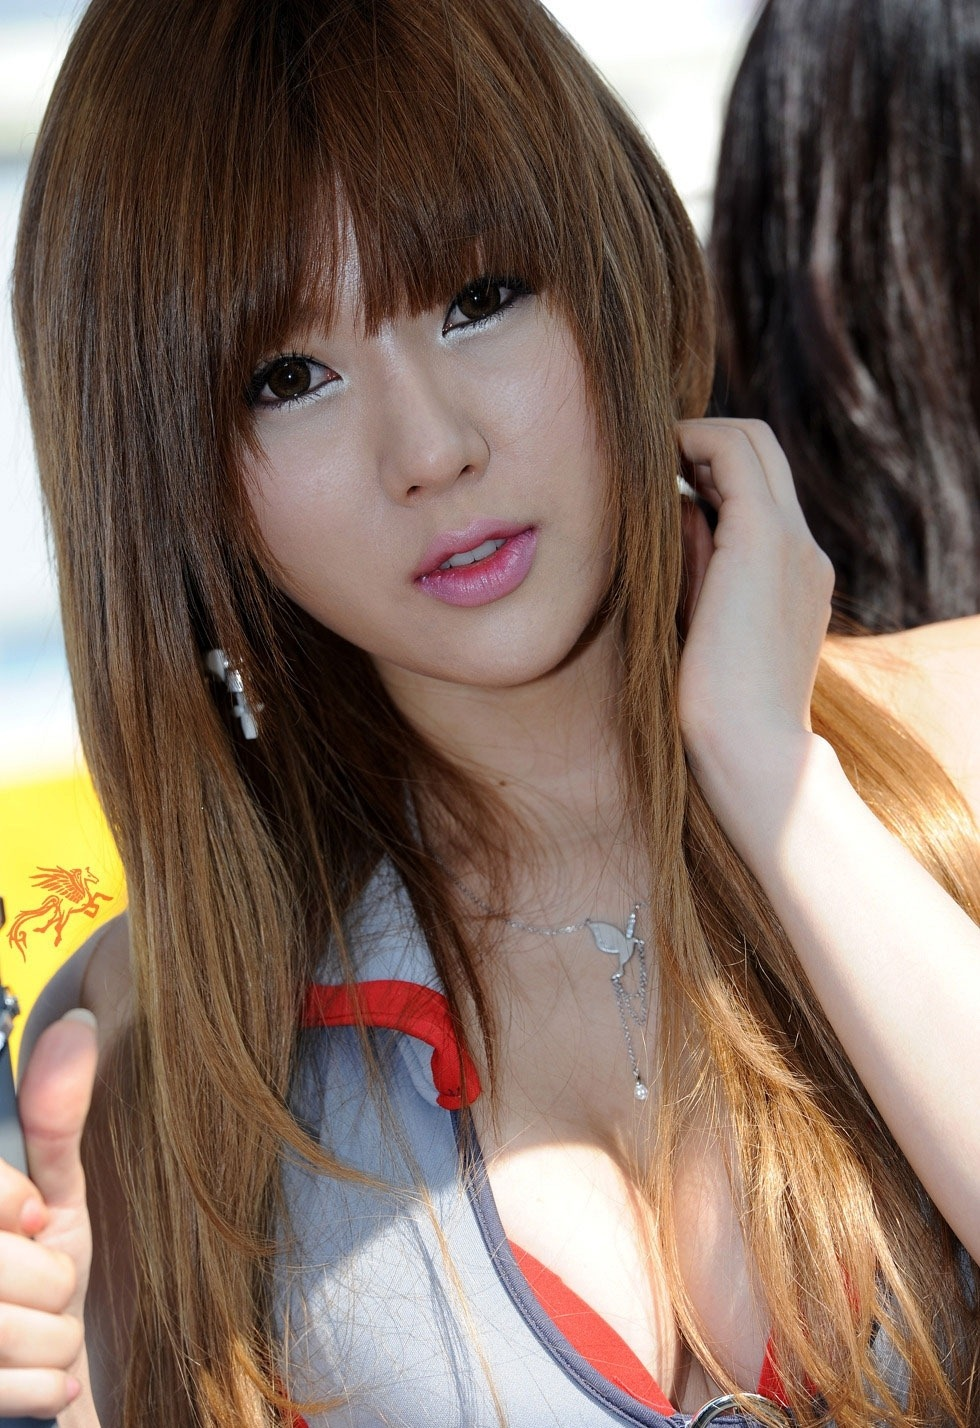 Download this Korean Models picture